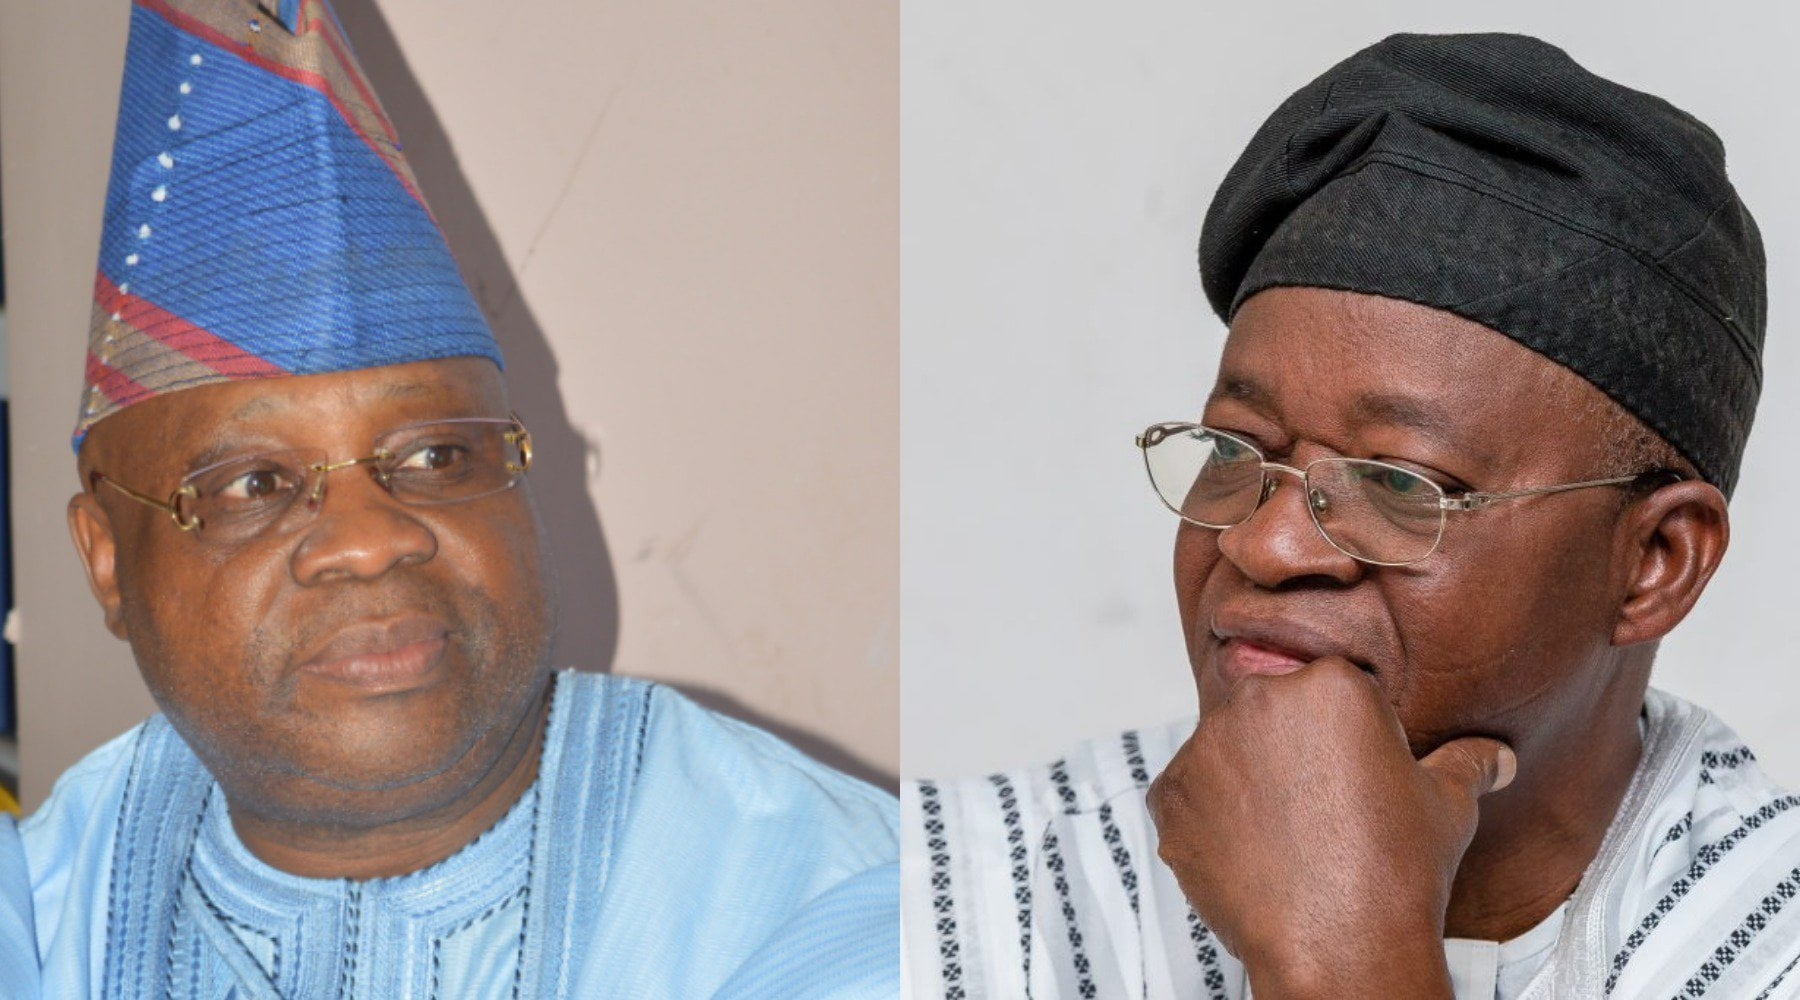 adeleke vs oyetola - BREAKING: Osun: Oyetola wins as Supreme Court rules in Adeleke's suit against Governor